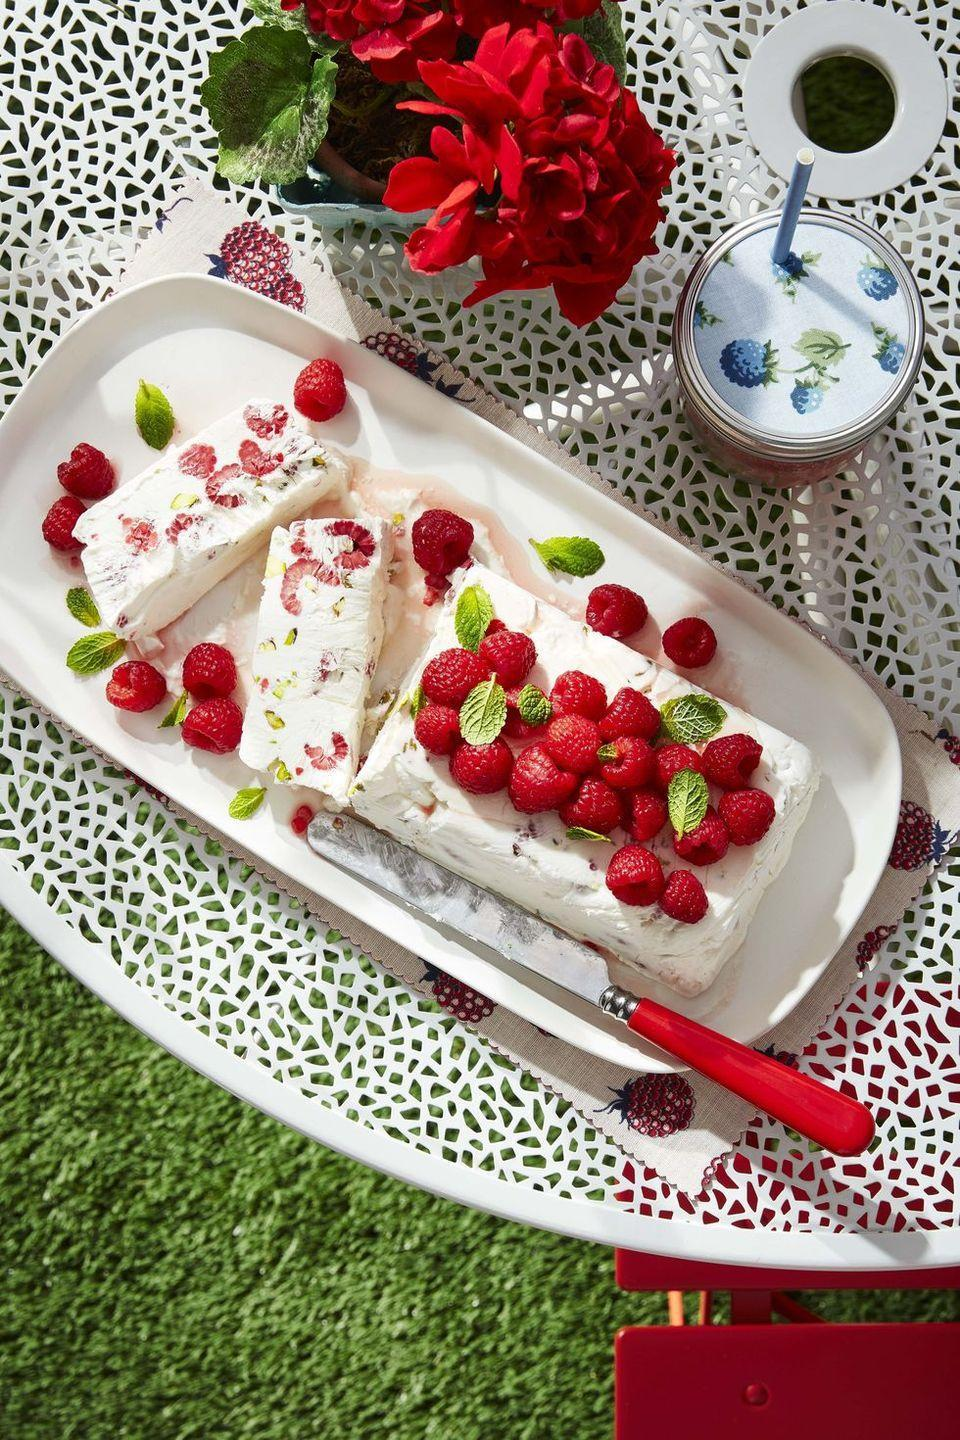 """<p>Meaning <em>semi-frozen</em>, this chilled dessert is chock-full of fresh raspberries and savory pistachios.</p><p><strong><a href=""""https://www.countryliving.com/food-drinks/a32352653/raspberry-and-pistachio-semifreddo/"""" rel=""""nofollow noopener"""" target=""""_blank"""" data-ylk=""""slk:Get the recipe"""" class=""""link rapid-noclick-resp"""">Get the recipe</a>.</strong> </p>"""